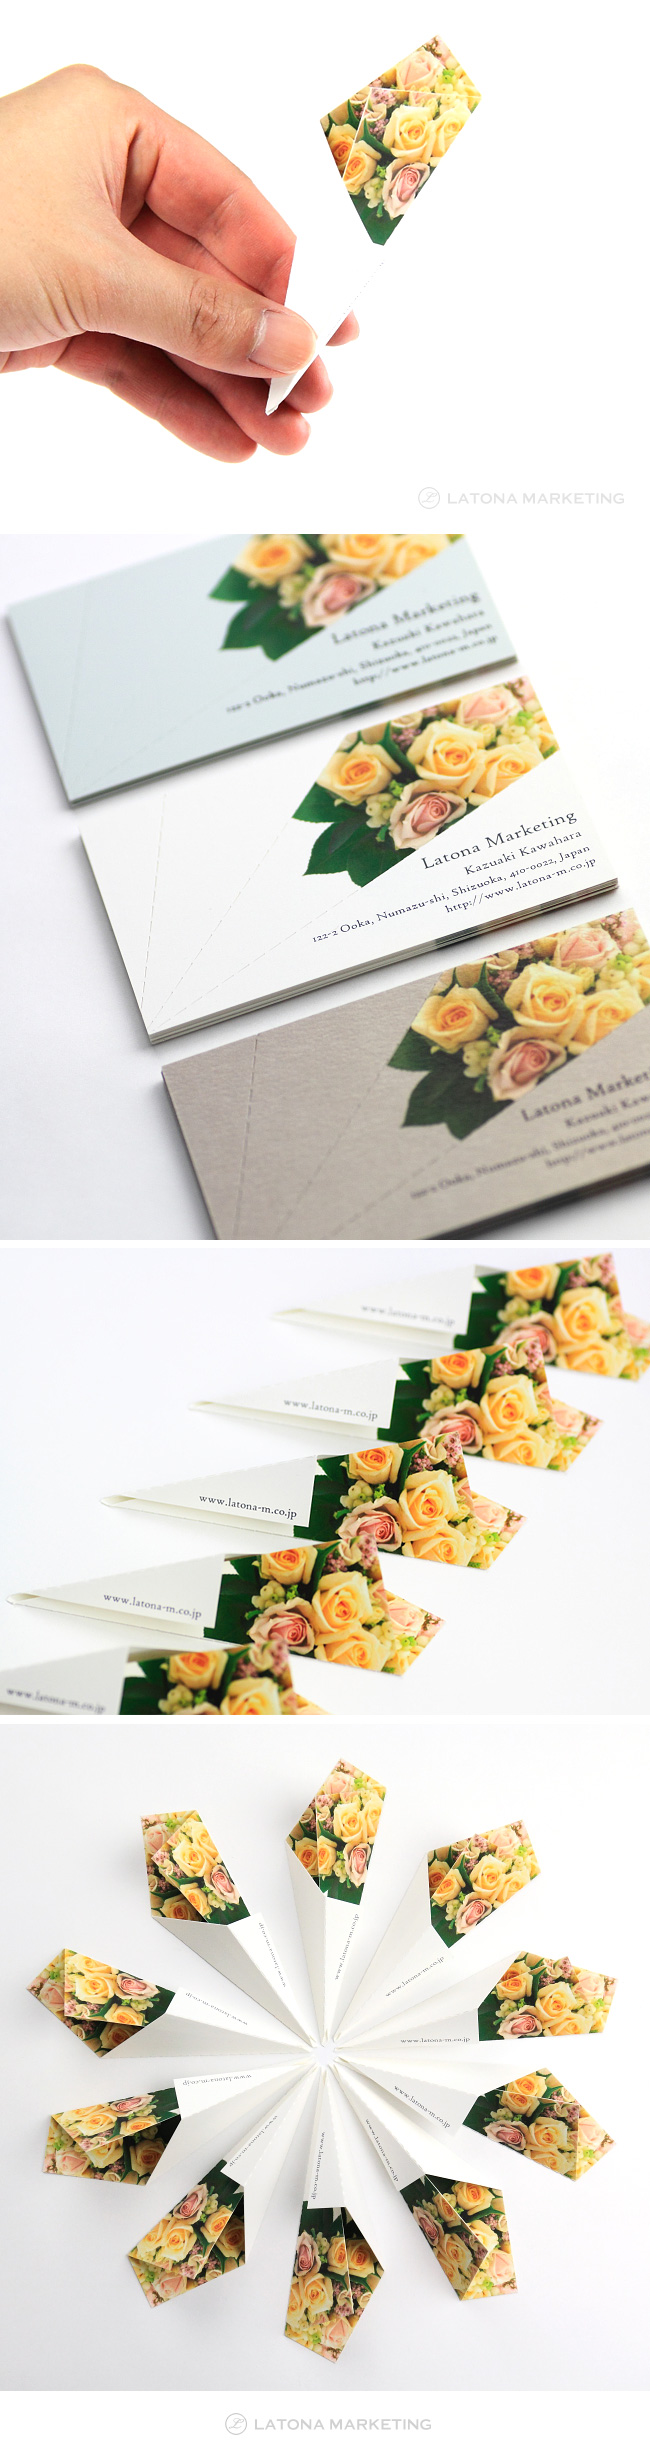 design_business_cards02